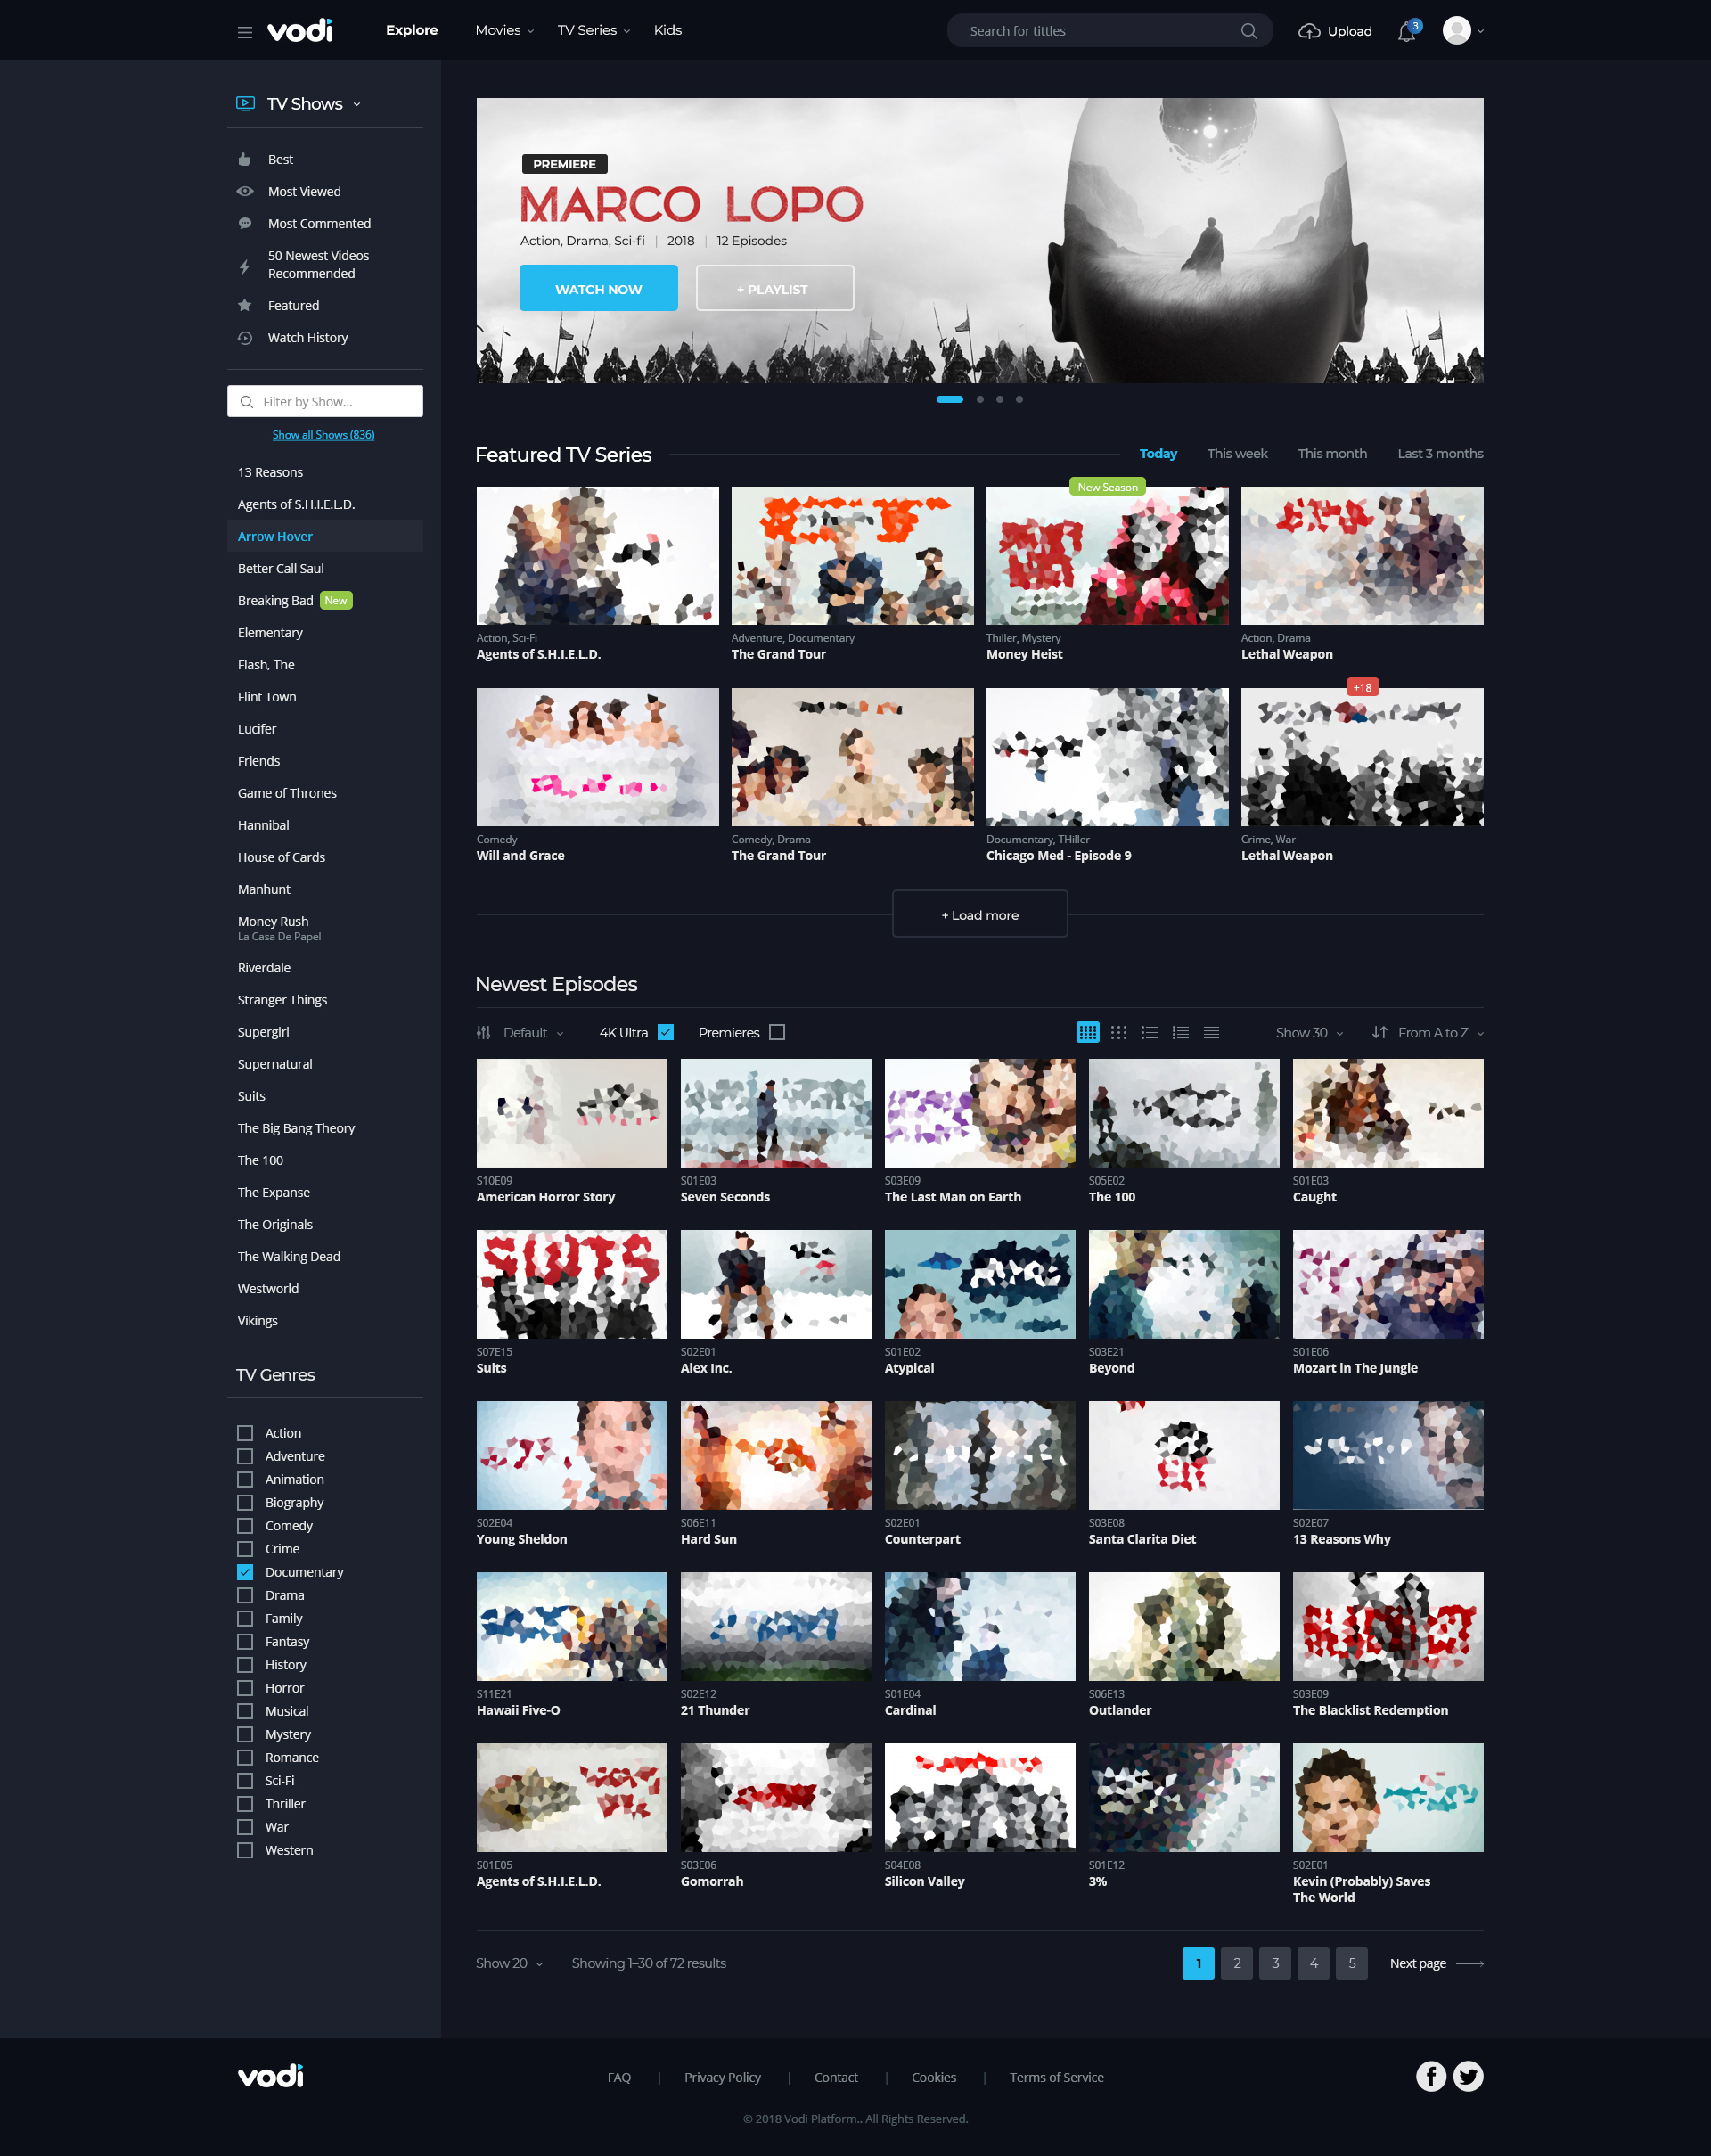 00 Vodi Psd Template Jpg 01 Homepage 1410px Dark 02 Light 03 Magazine 04 Sports